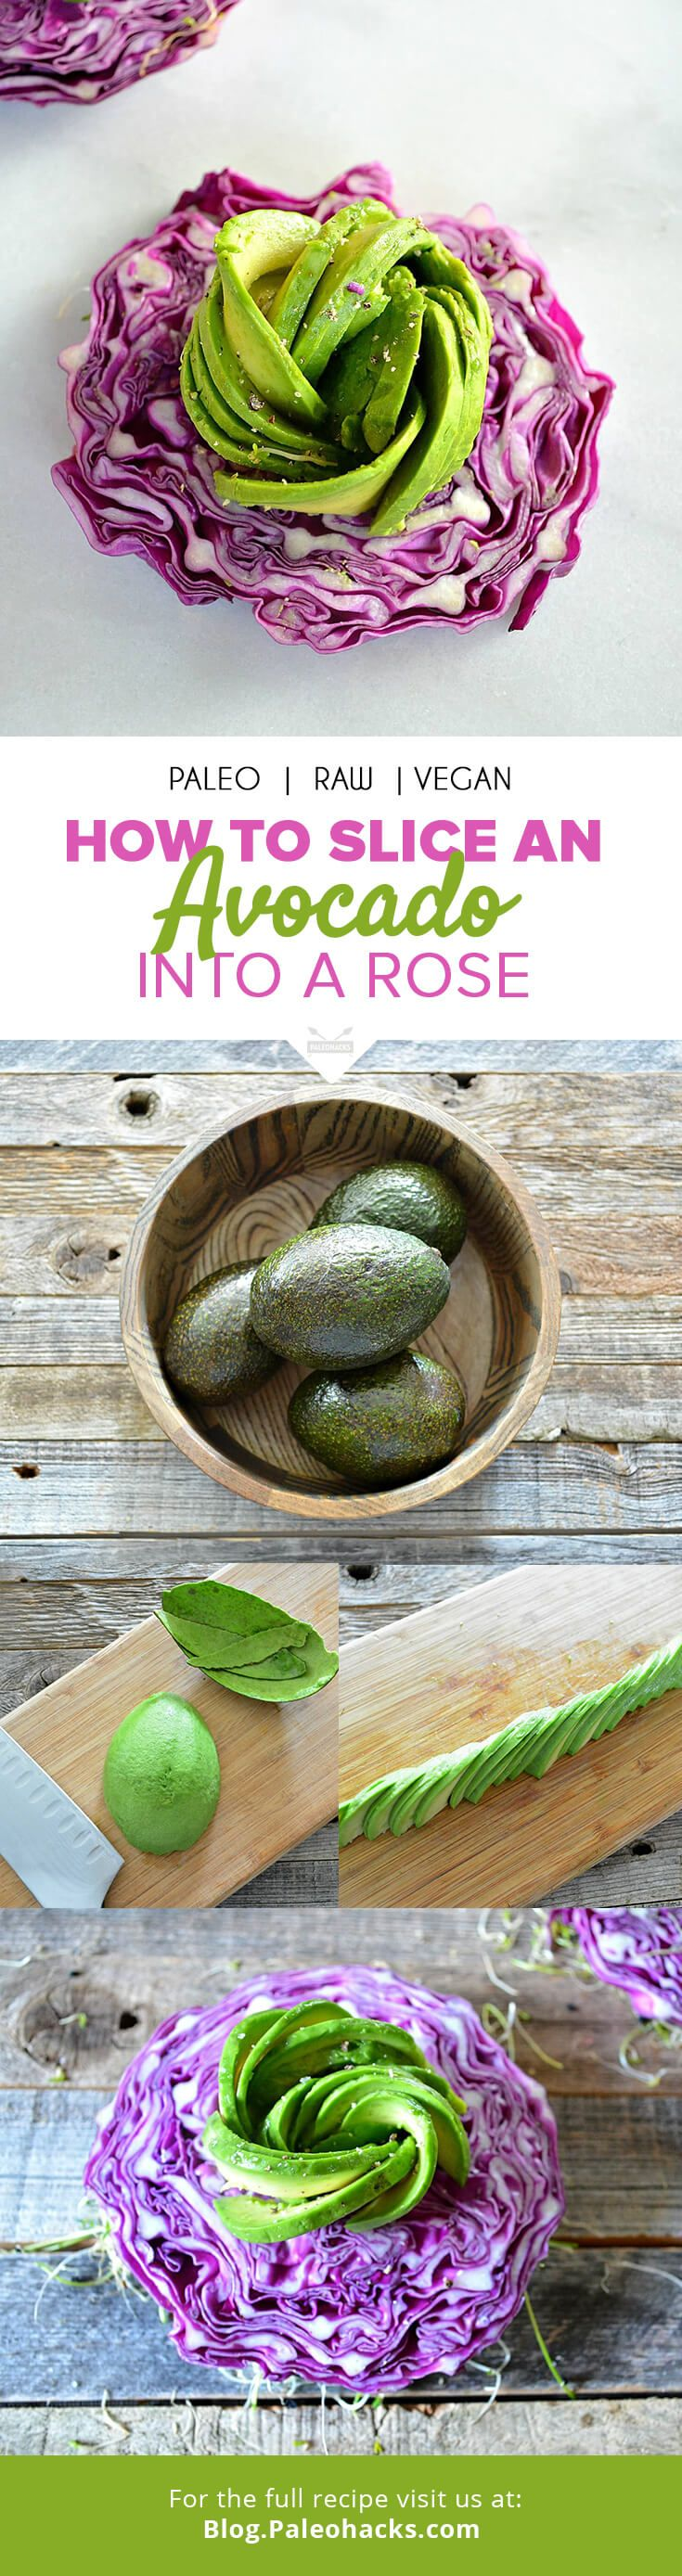 Social media is rampant right now with glorious pictures of rose-shaped avocado slices. Luckily, it's easy to transform your next avocado into a work of art! Here's how to do it. For the full how-to guide, visit us here: http://paleo.co/howtoavocadorose